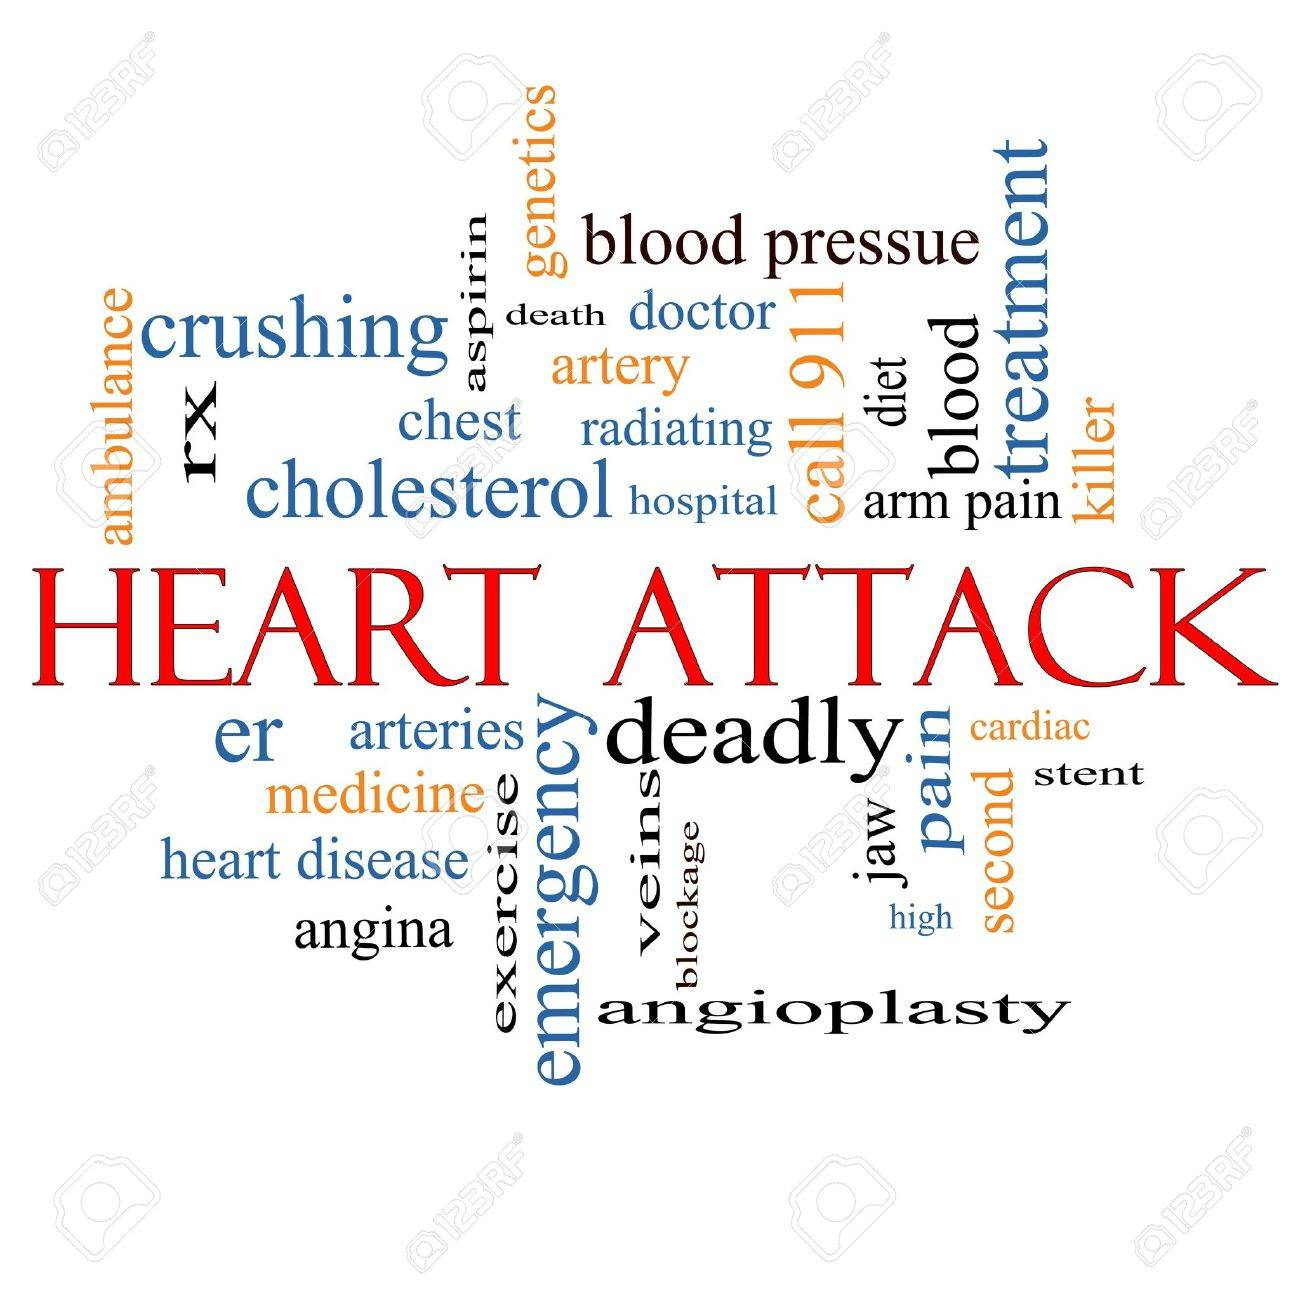 Heart Attack Word Cloud Concept with great terms such as heart disease, rx, artery, doctor and more. Stock Photo - 17685724